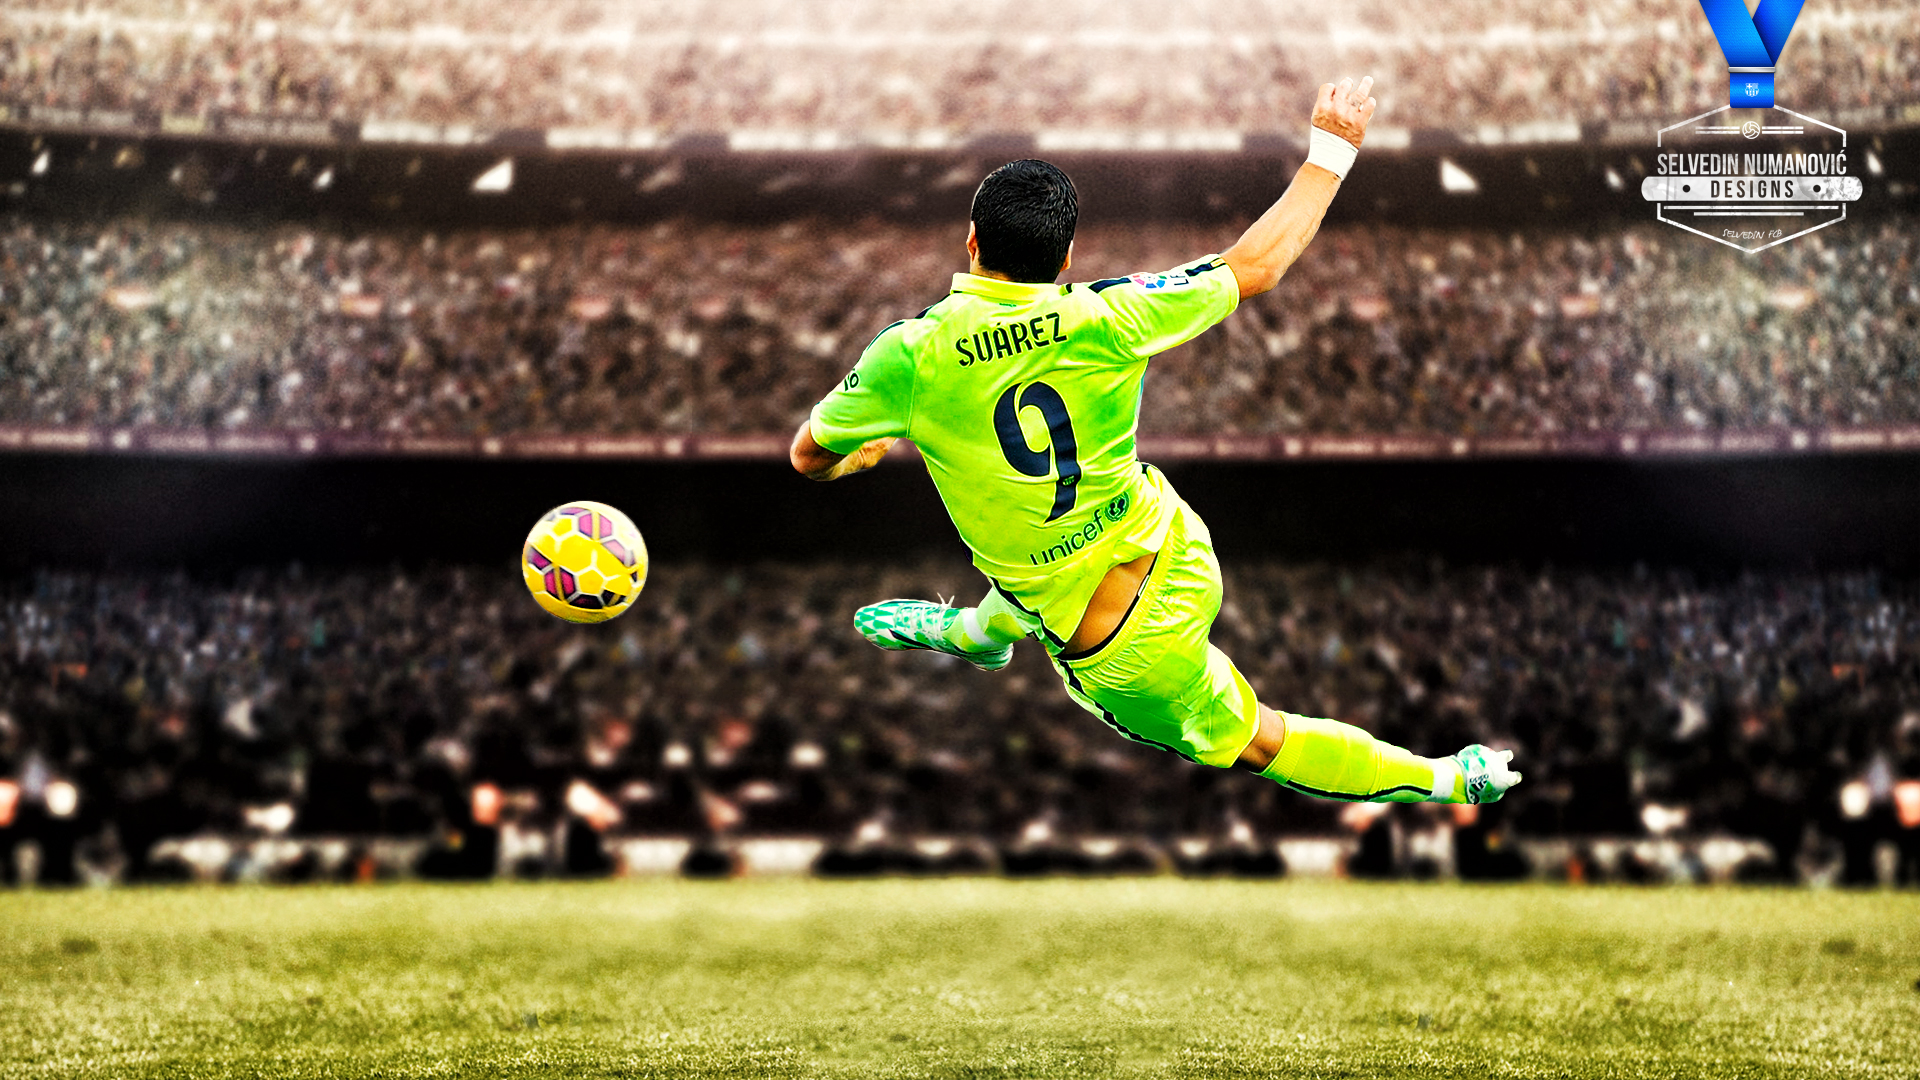 Luis Suarez FC Barcelona wallpaper HD by SelvedinFCB 1920x1080